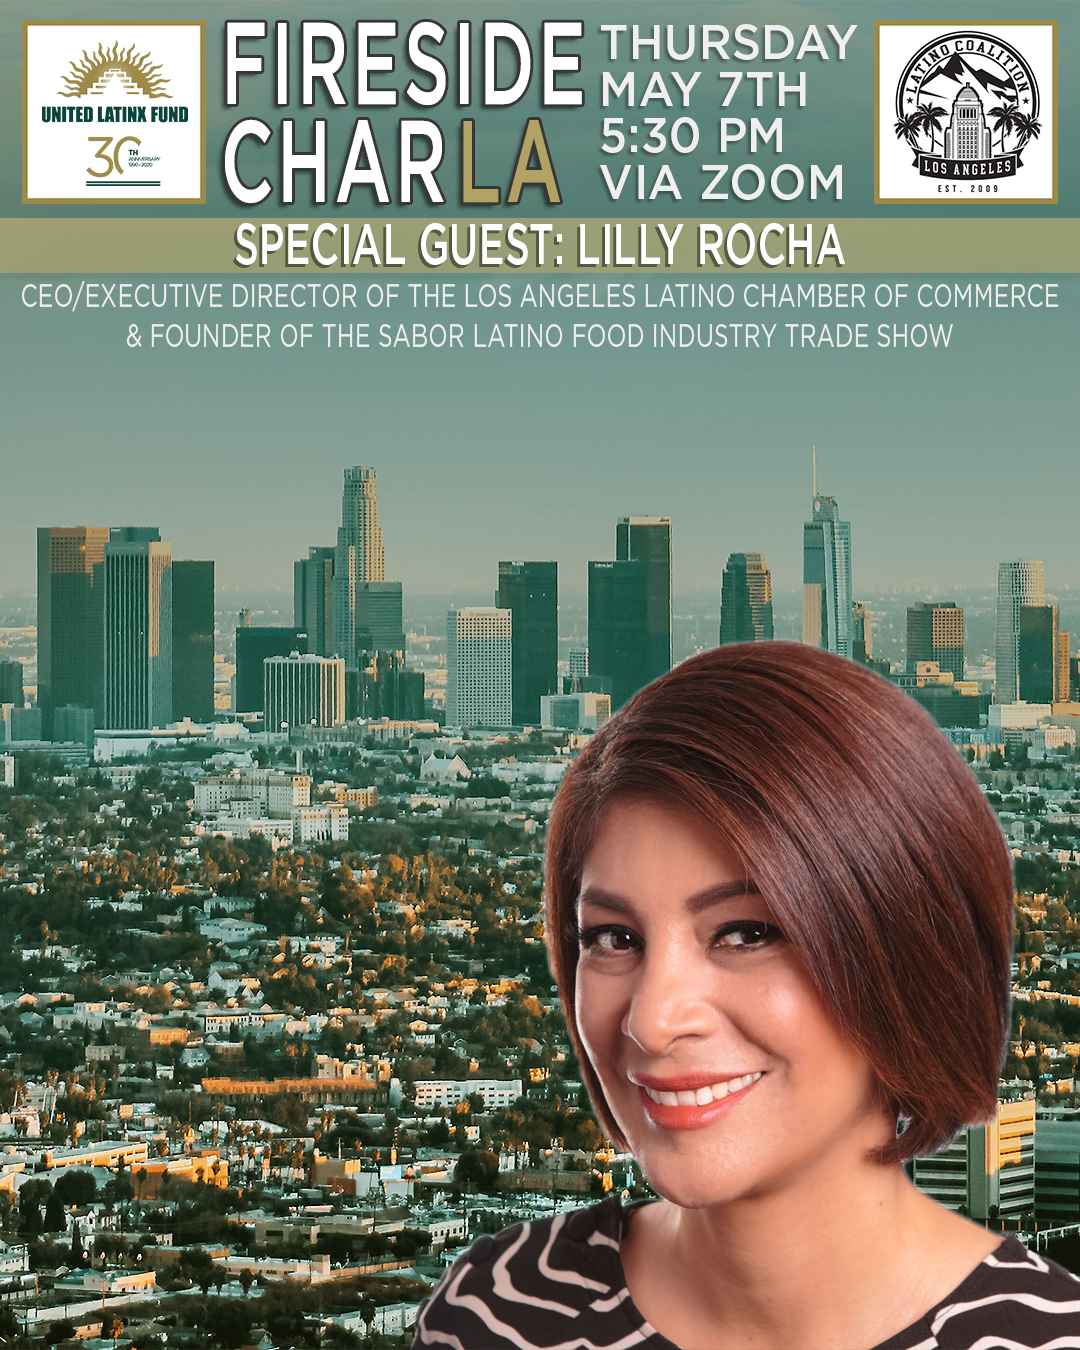 5/7/2020 Fireside CharLA - Featuring Lilly Rocha and Special Guests Tati Polo & Dora Herrera